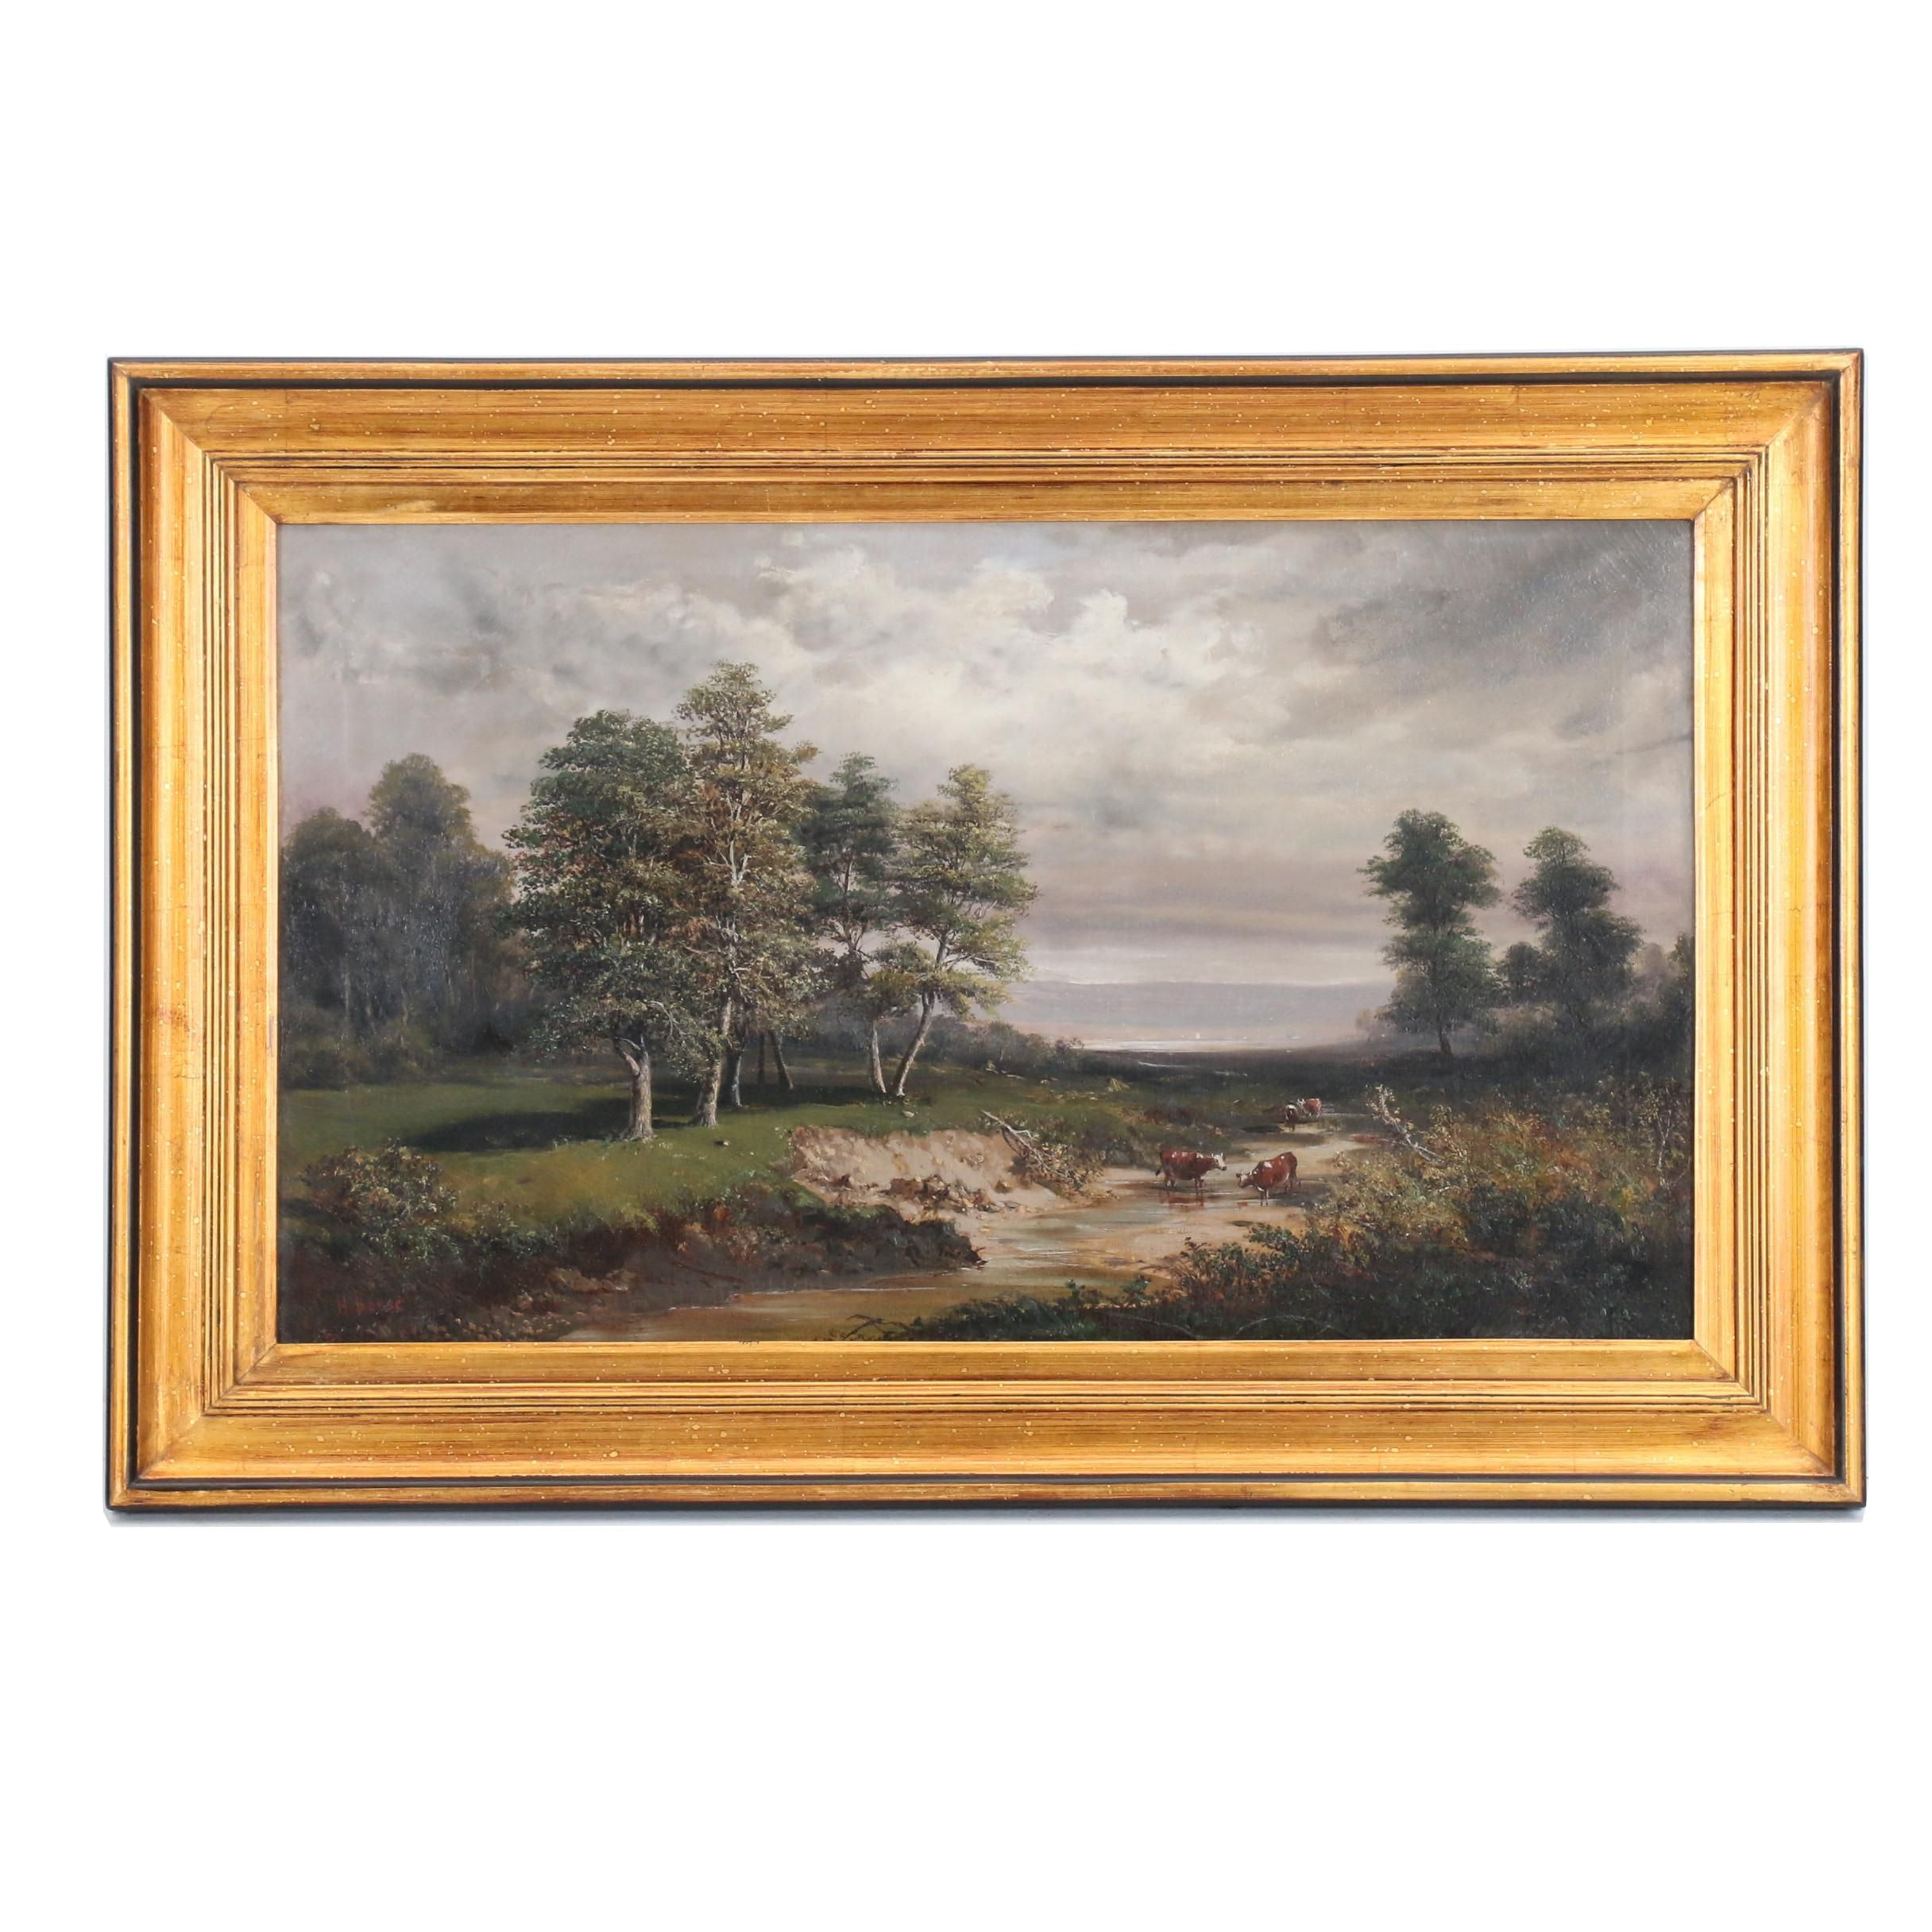 Henry Boese Oil Painting of Pastoral Landscape with Cows Wading